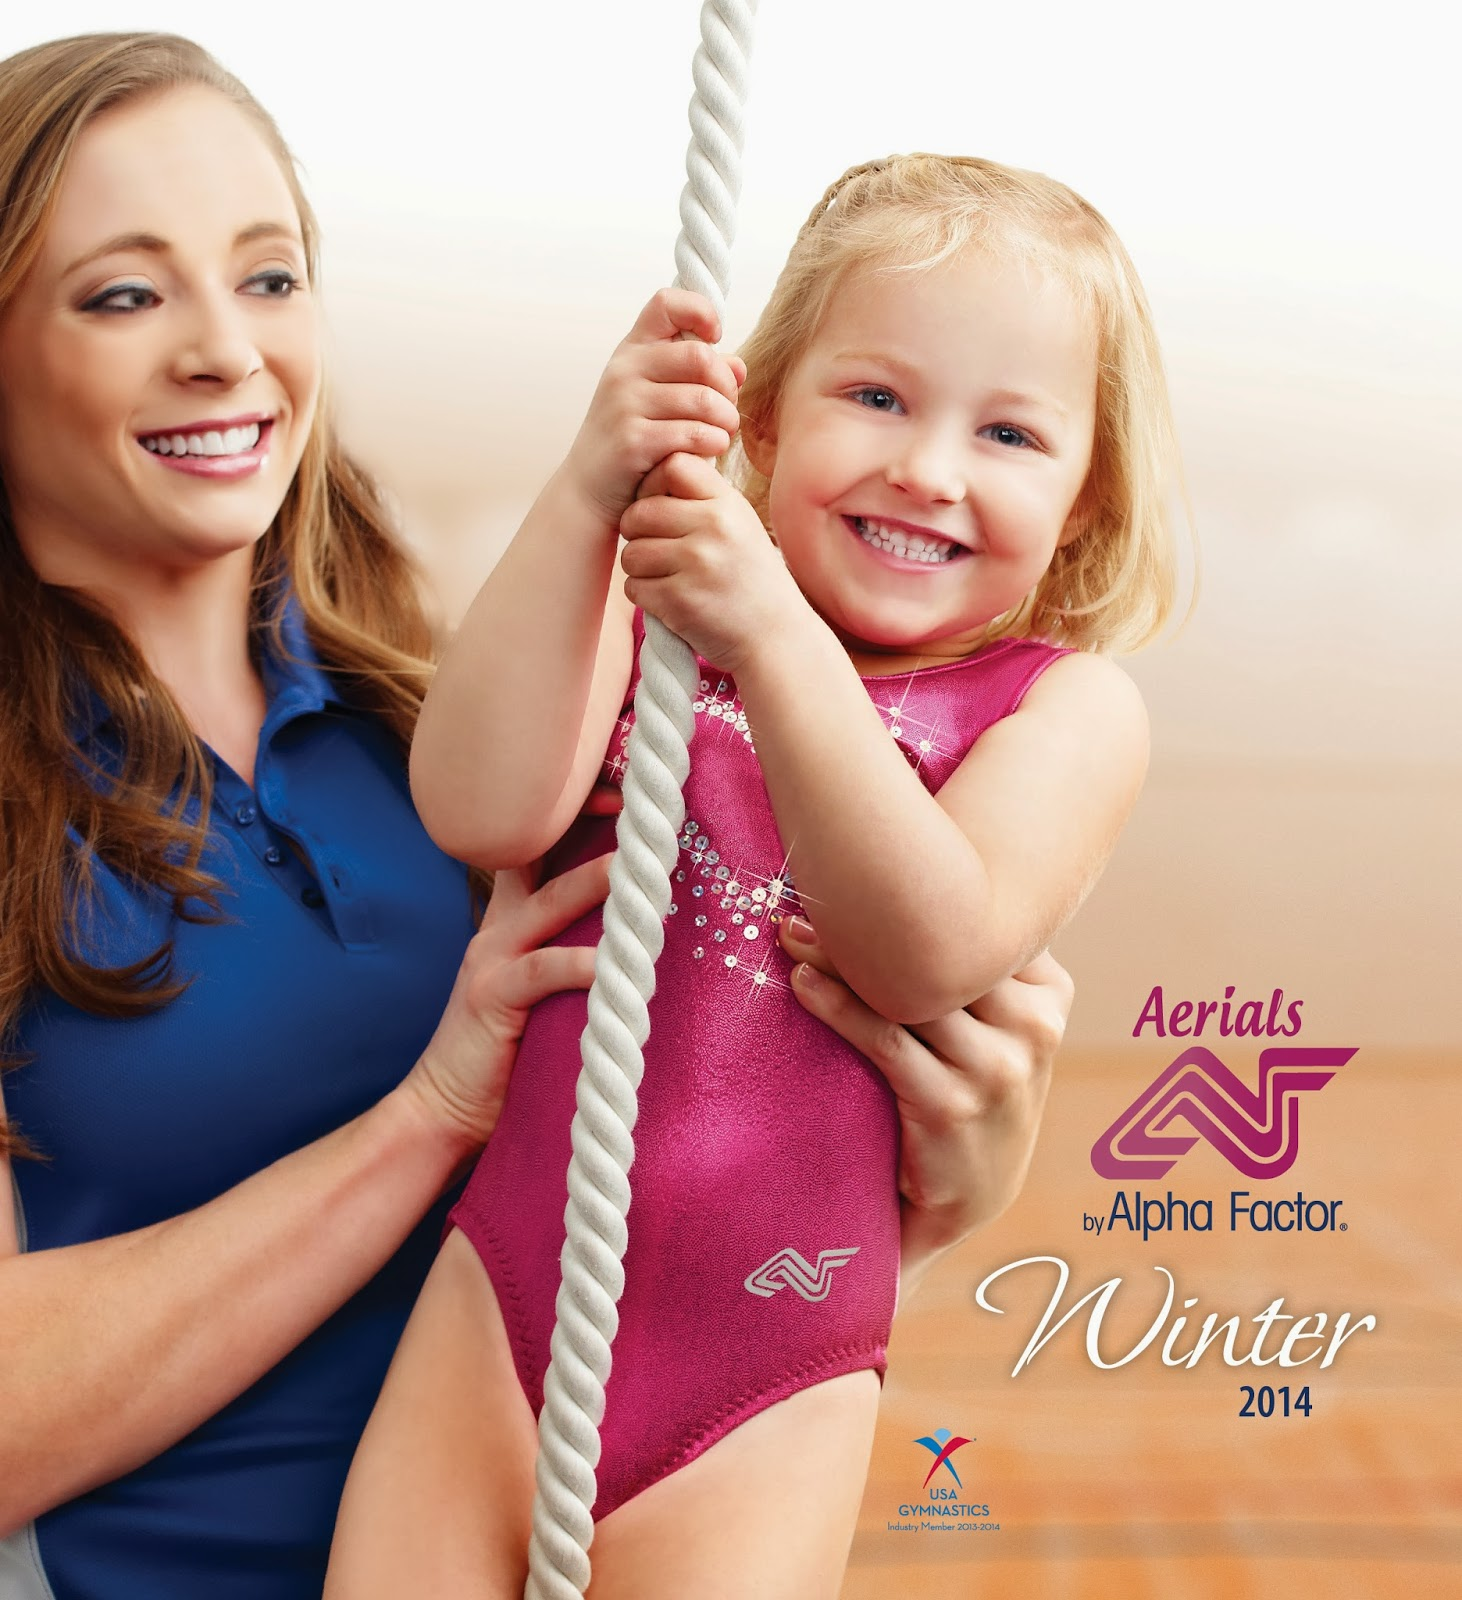 Aerials by Alpha Factor - Winter 2014 Workout wear Gymnastics catalog